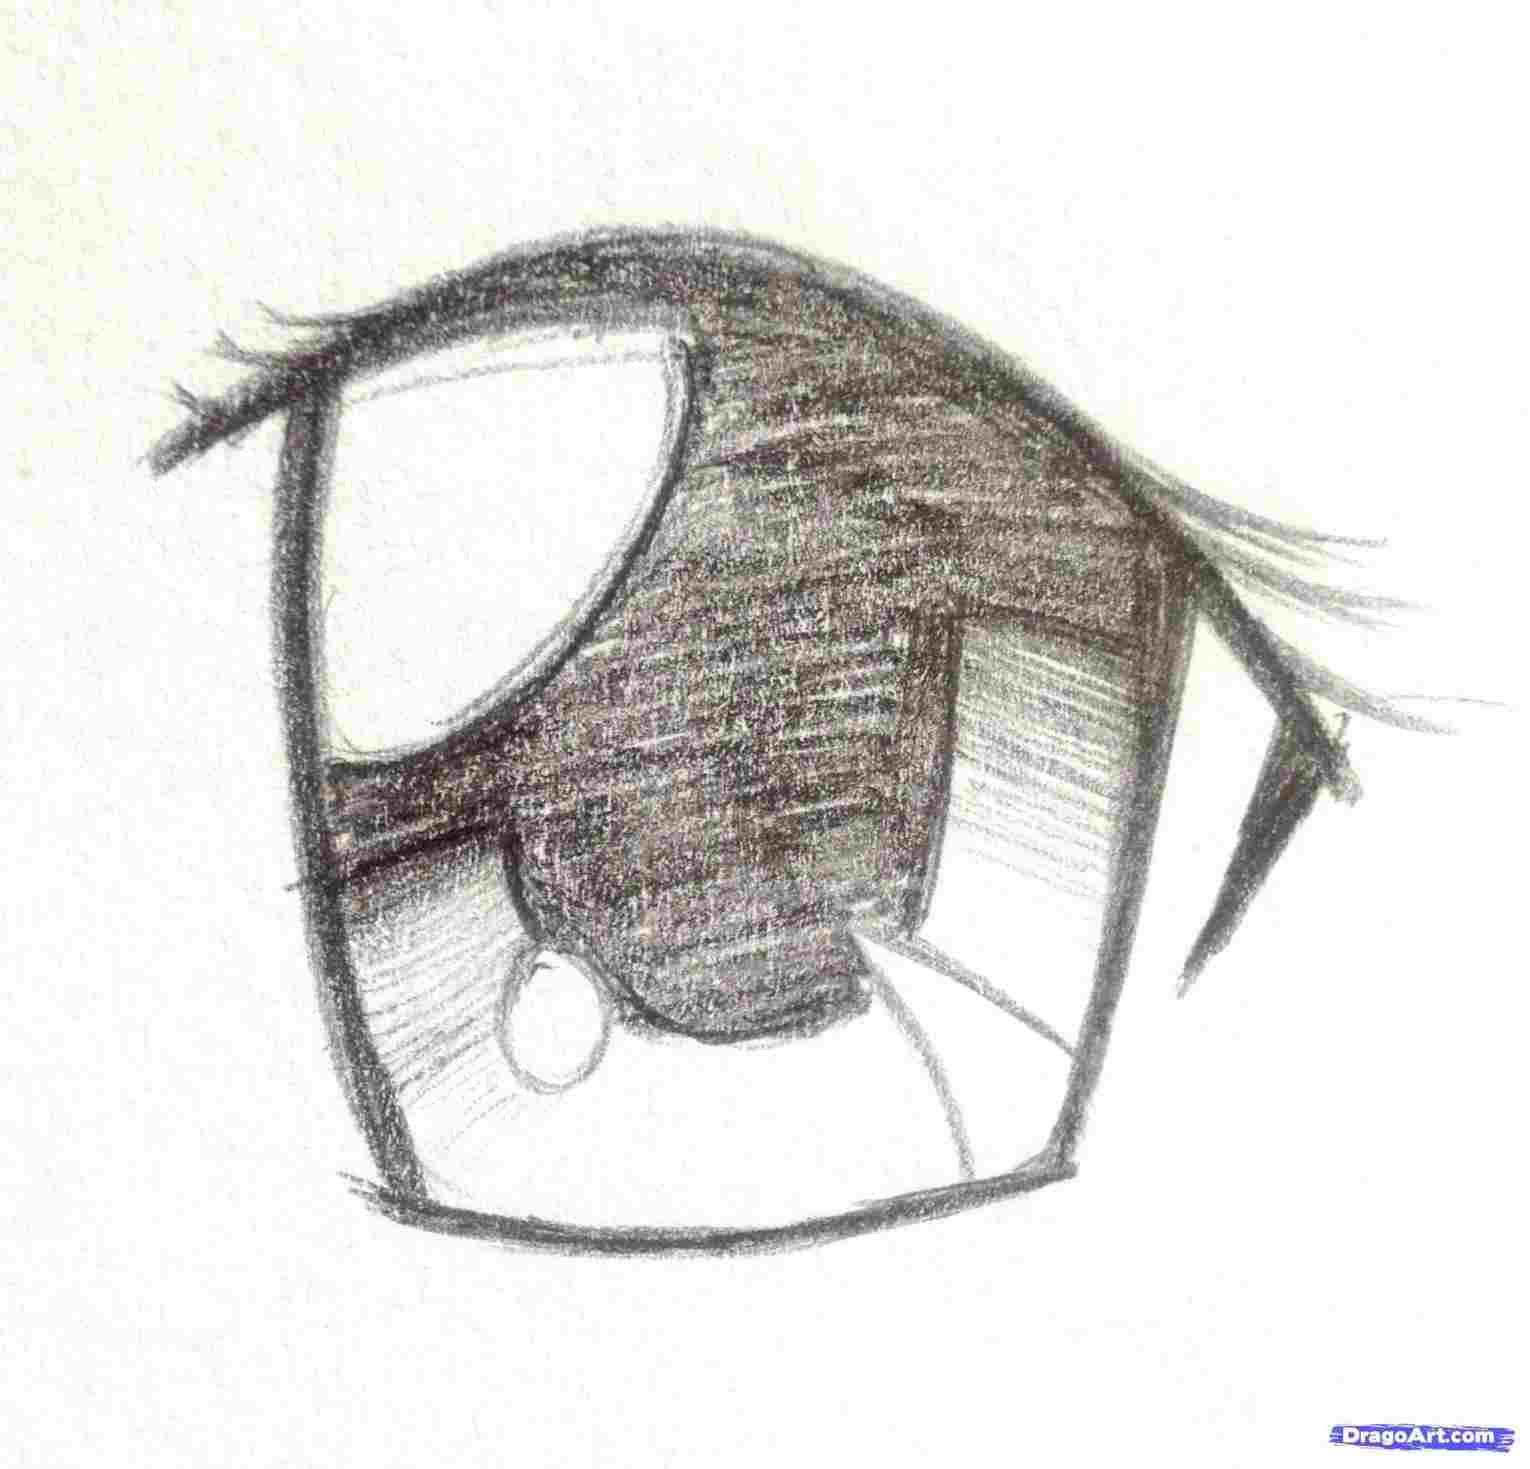 Simple Tips How To Draw Anime Eyes Crying Anime Eyes Drawing In 2020 How To Draw Anime Eyes Anime Eyes Anime Sketch